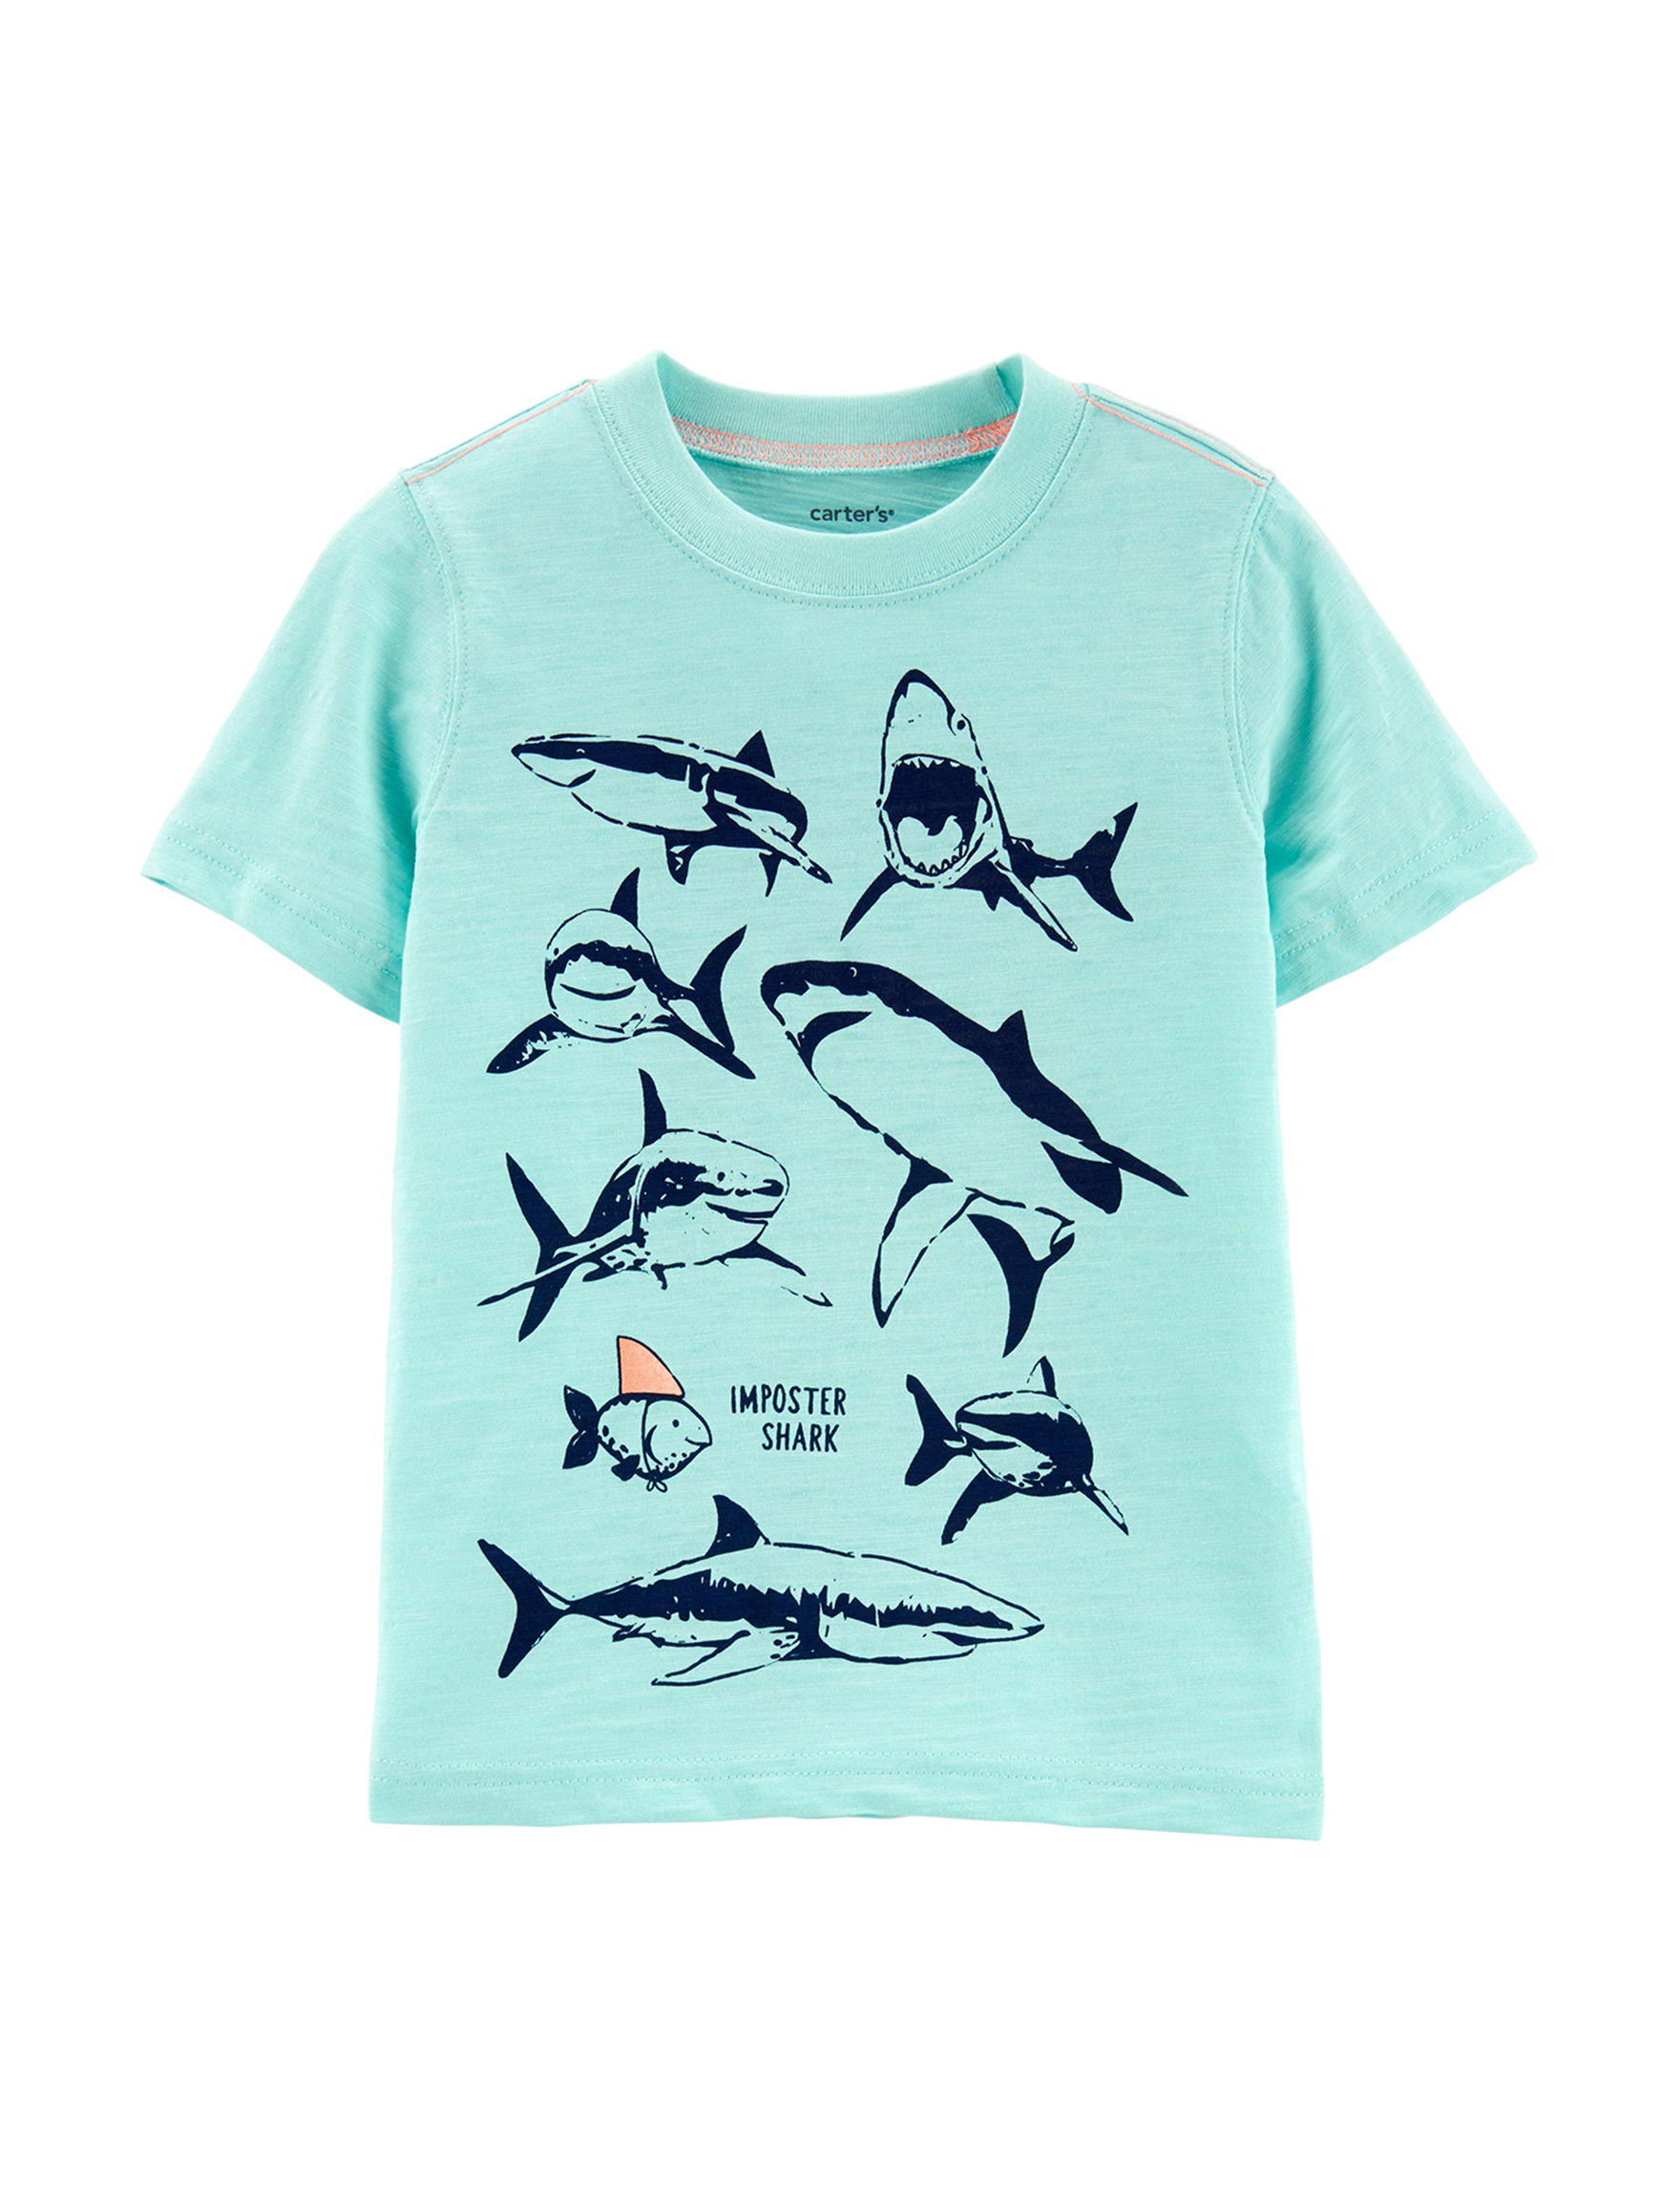 ebedf2bdc Carter's Imposter Shark Graphic T-shirt - Toddler Boys | Stage Stores